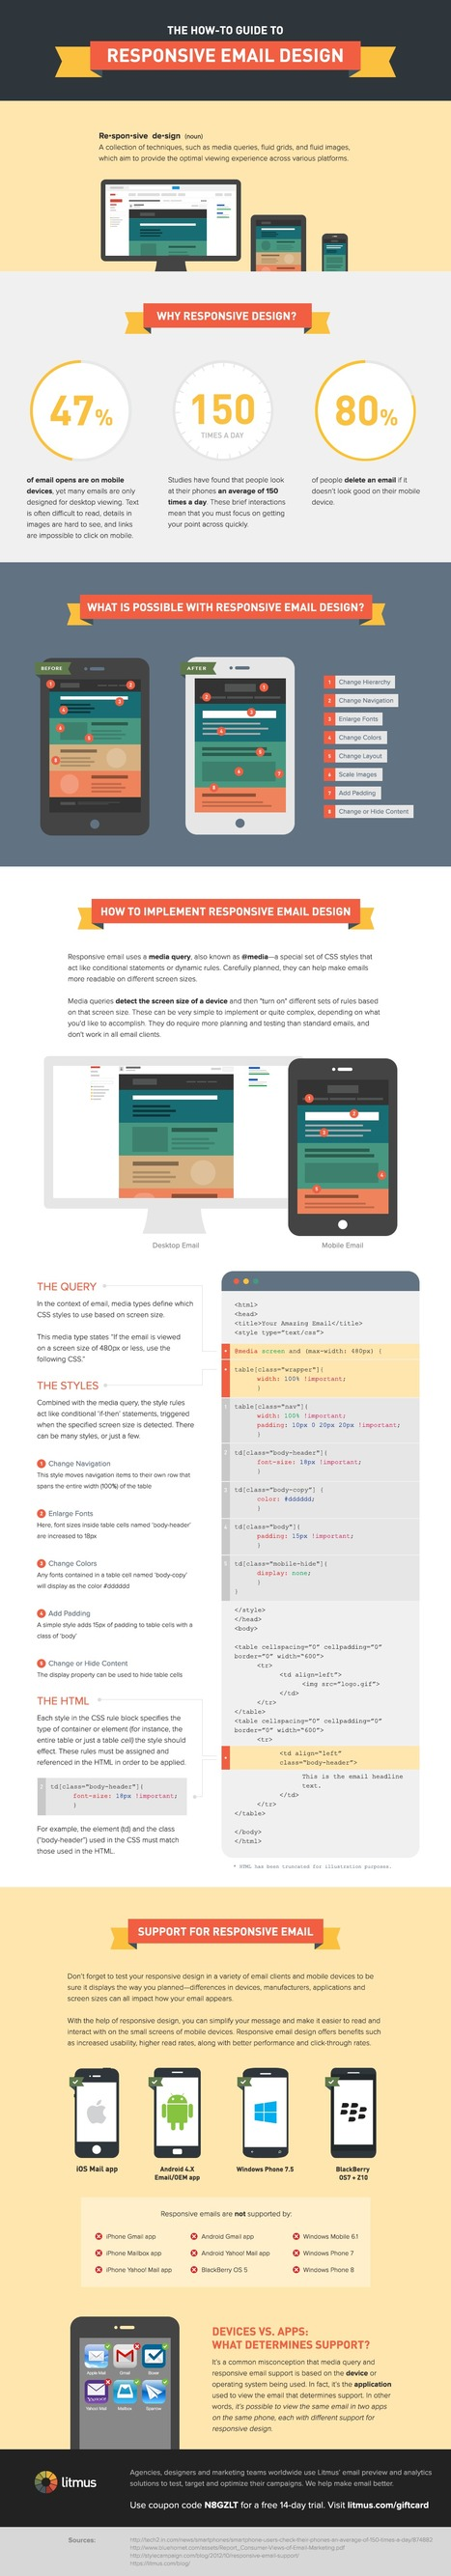 The How-To Guide to Responsive Email Design [Infographic] | DV8 Digital Marketing Tips and Insight | Scoop.it